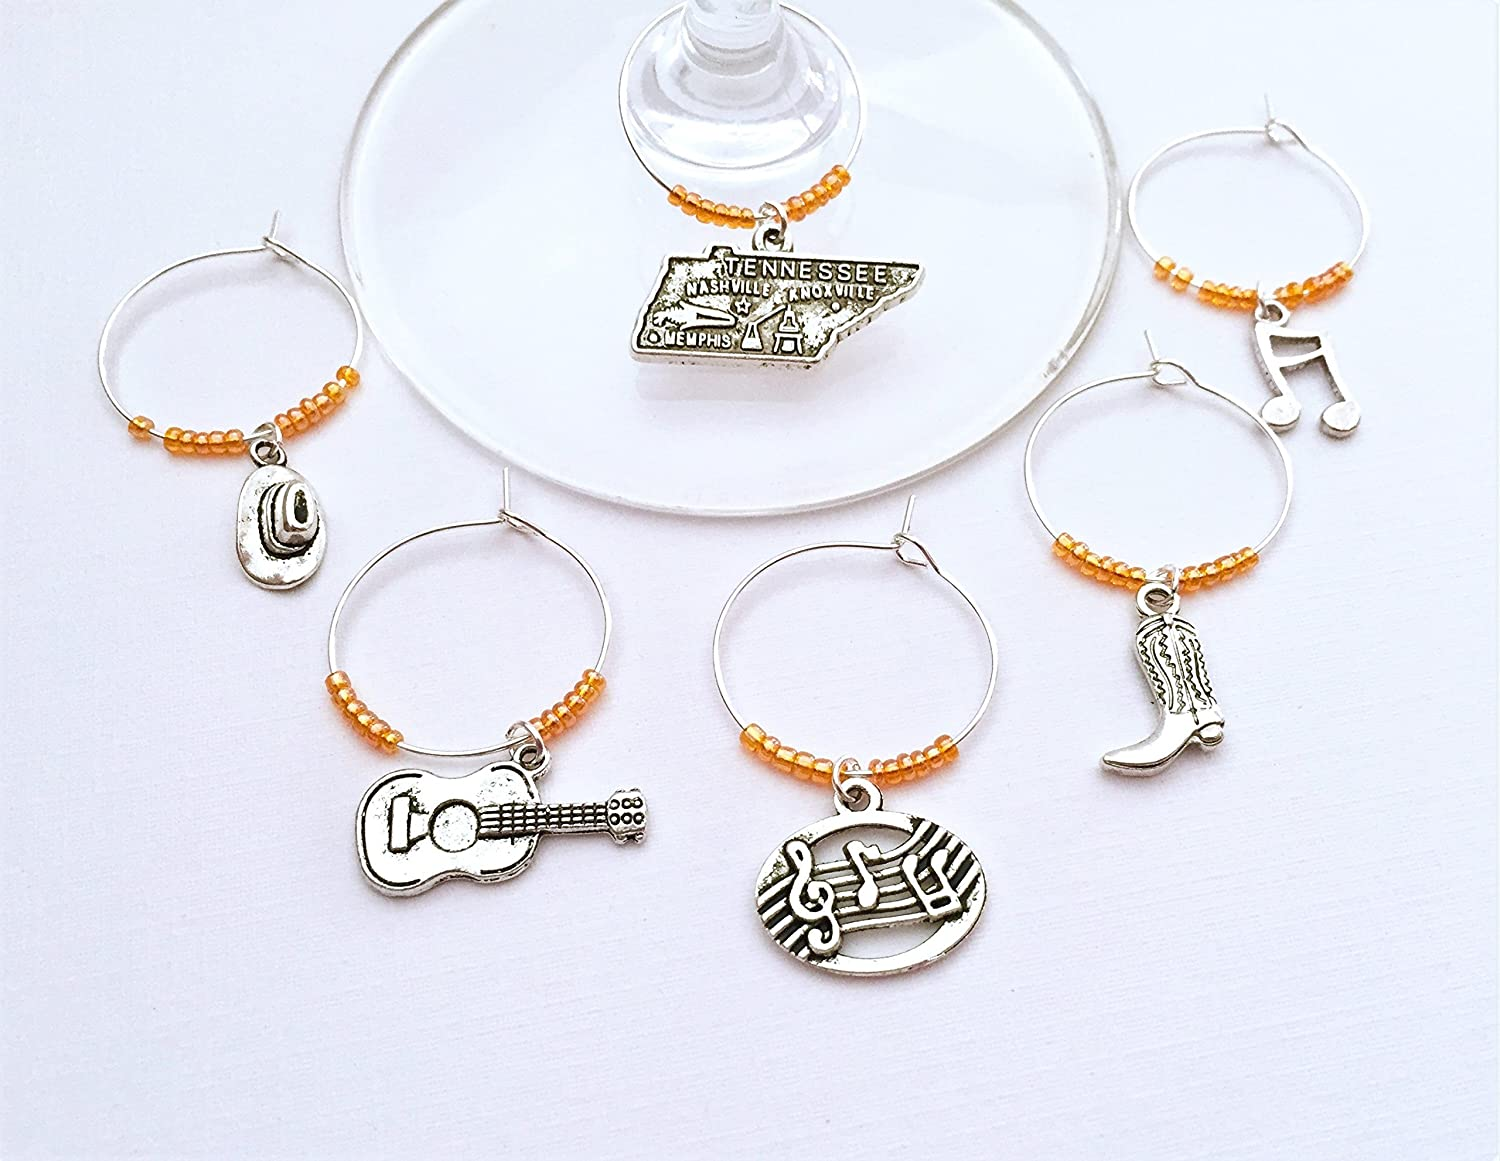 Nashville Tennessee Wine Charms. Inspired by Nashville Country Music. Set of 6. ORANGE BEADS.